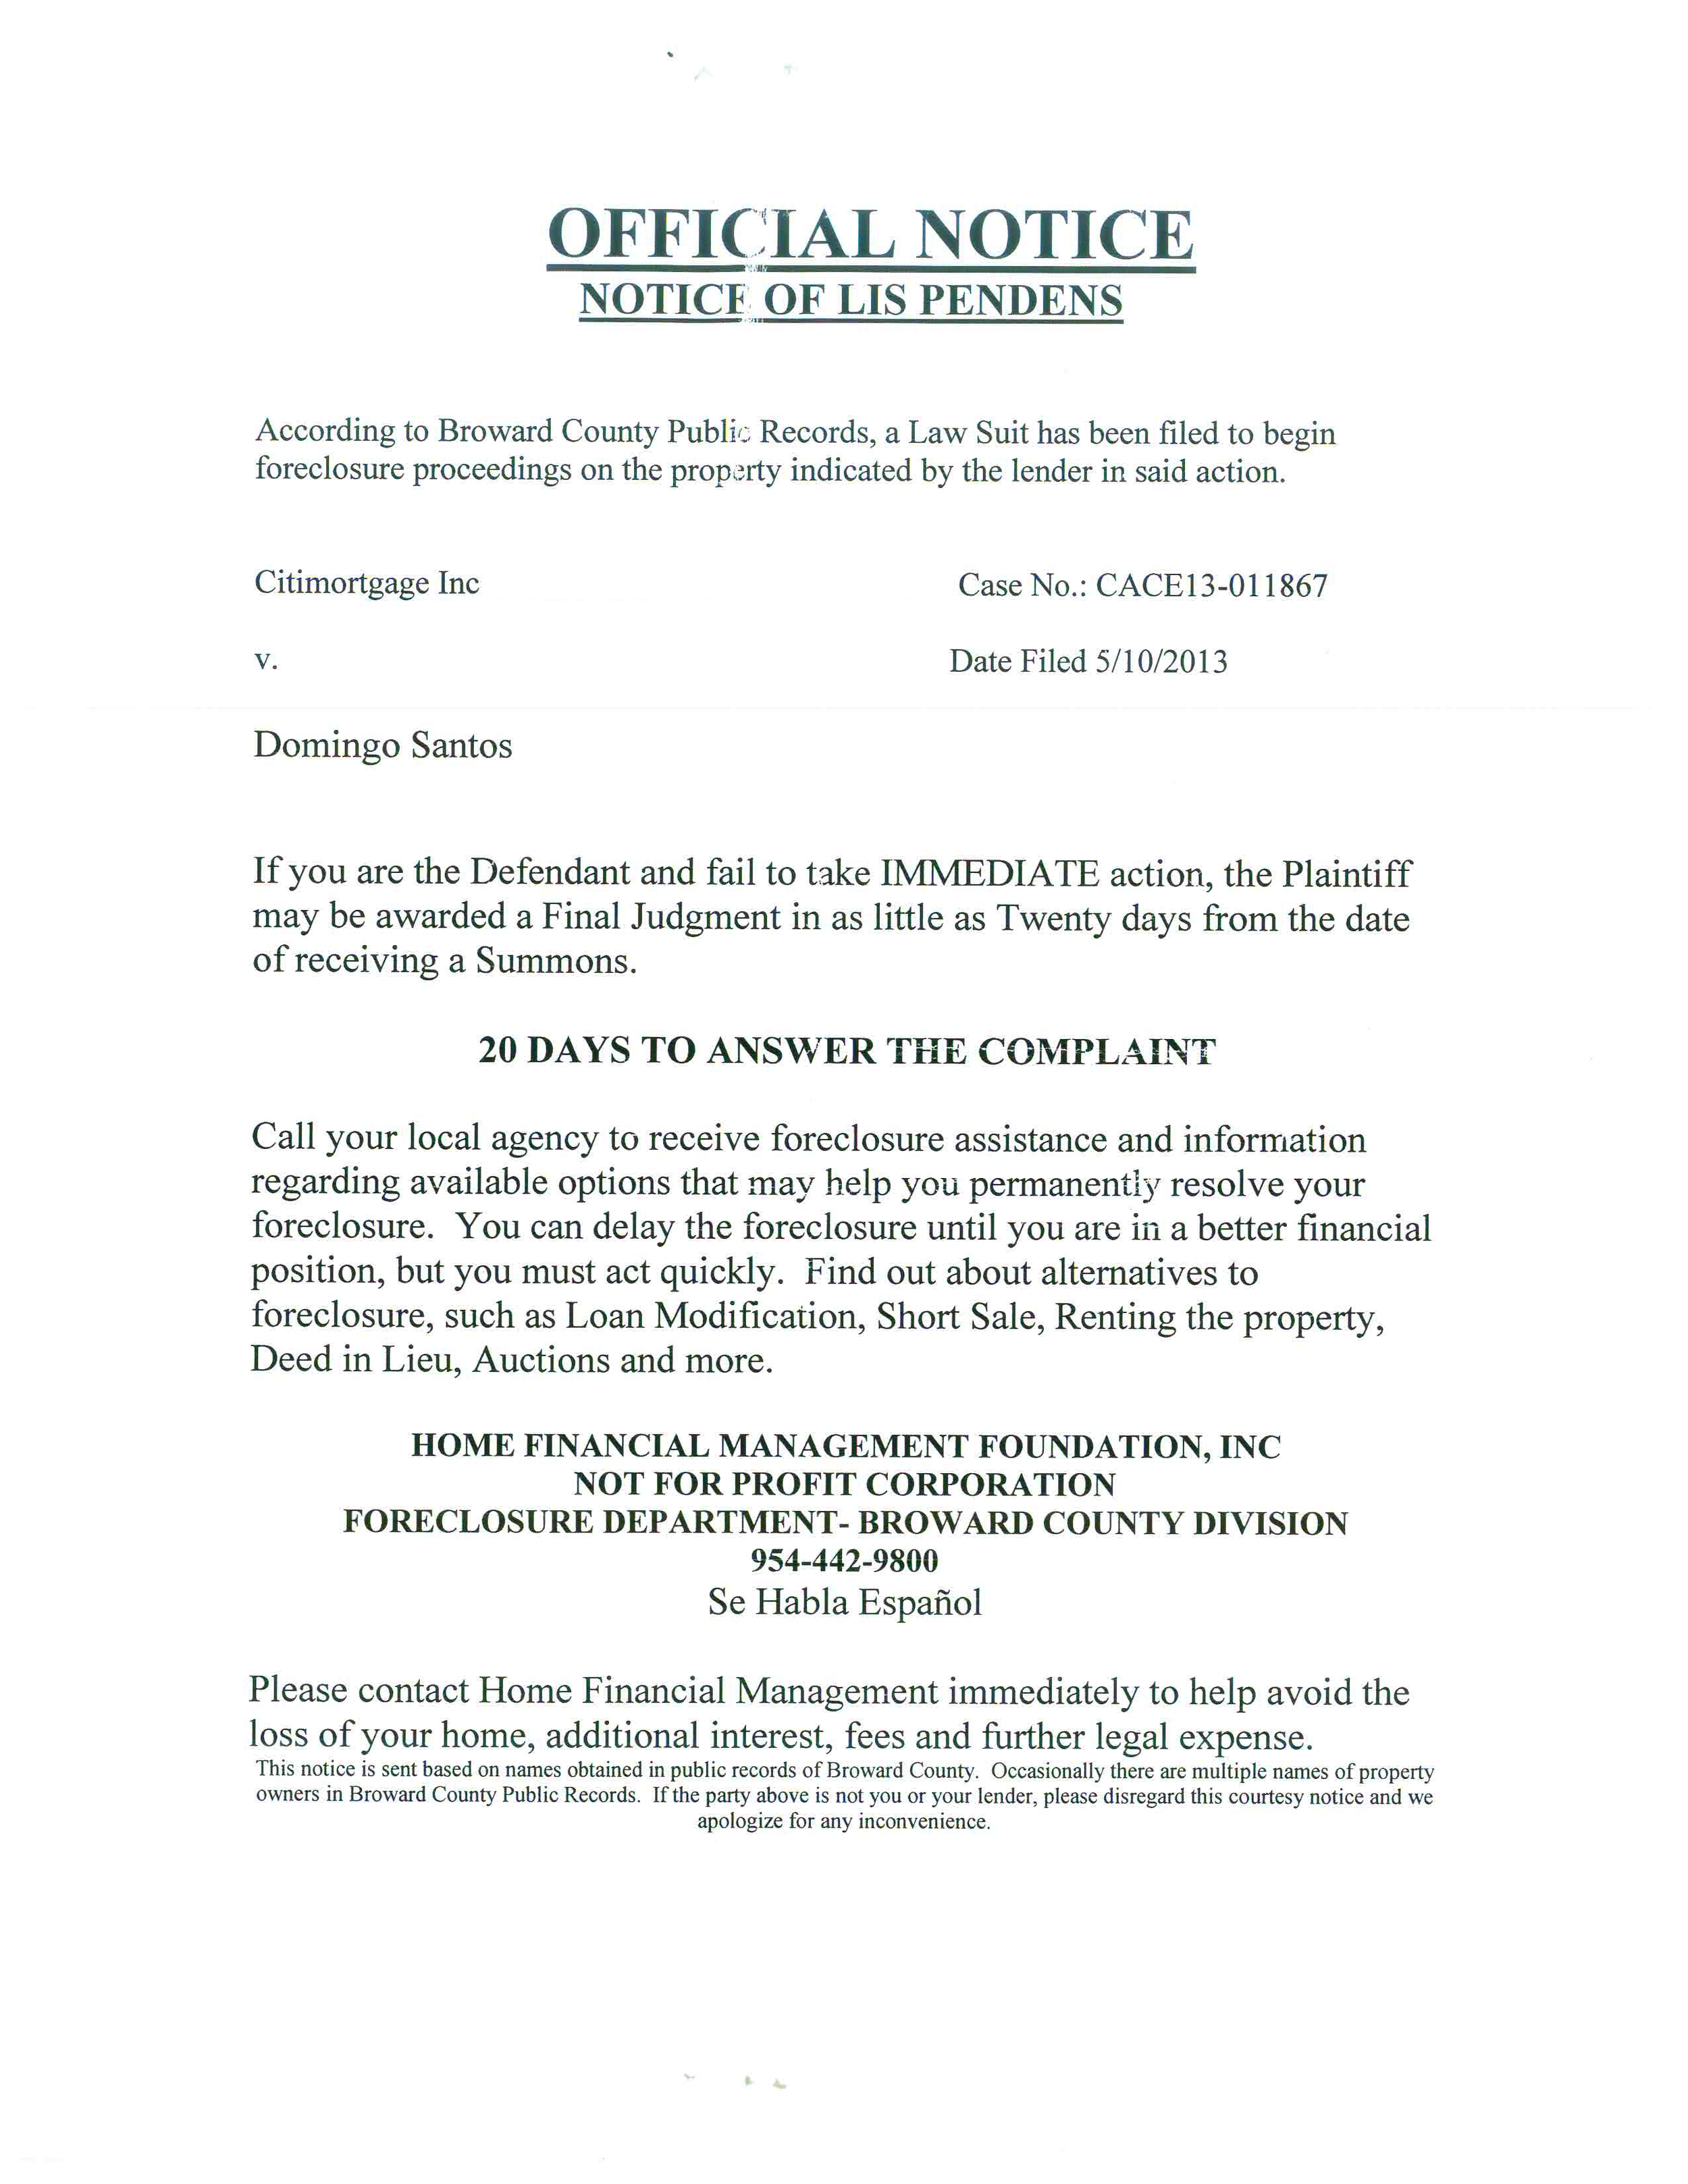 Scammers will create documents that look like they are coming from the courts or a homeowner's lender. Here, the scammer has created a fake lis pendens notification — with instructions to contact their firm for help.